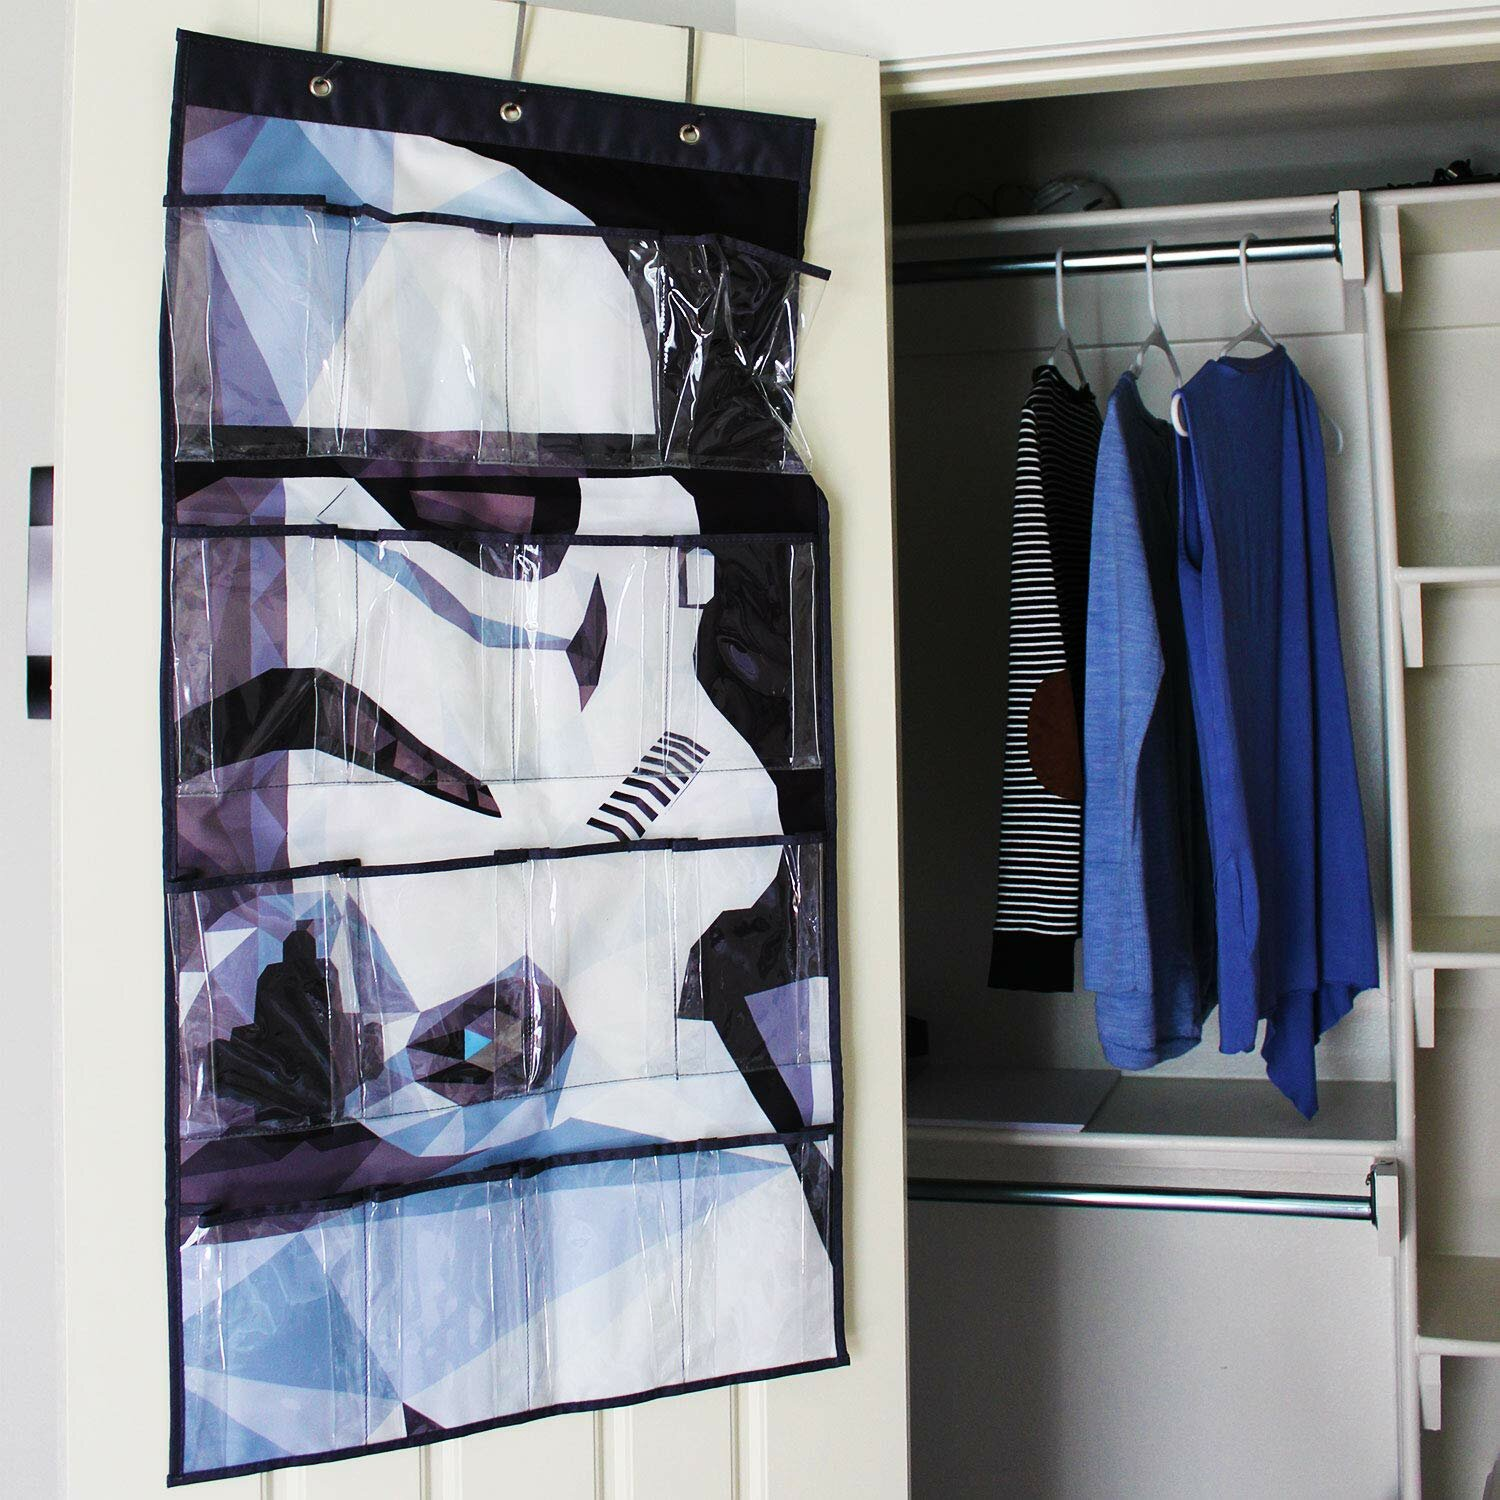 Everything Mary Disney Star Wars Shelves Collapsible Hanging Organizer 8 Pair Clothing Towel Storage For Closet And Bedroom Wayfair